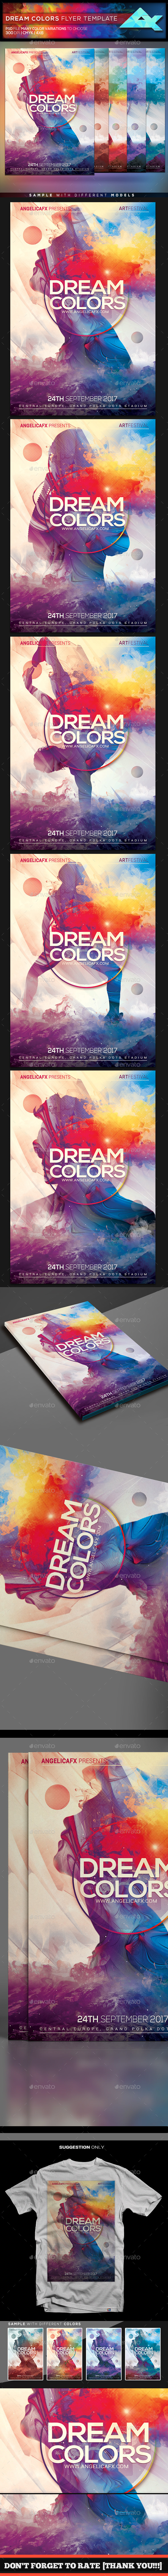 Dream Colors Flyer Template - Events Flyers